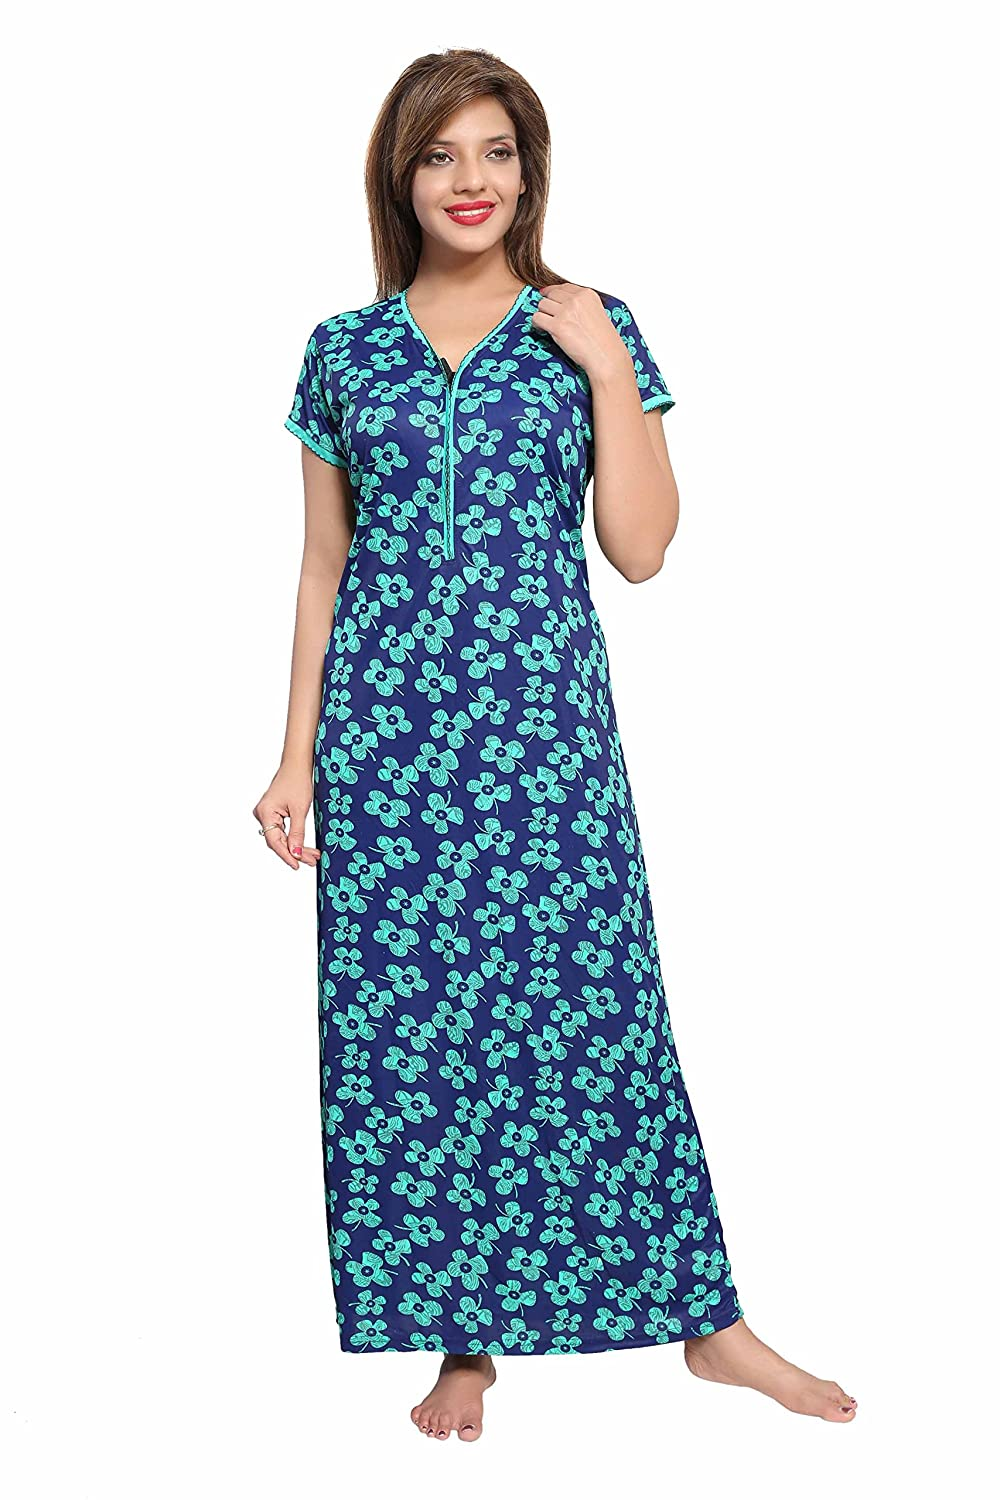 soulemo beautiul print nighty night gown nightwear nightdress feeding nighty  with (pocket 7eda1f2a1